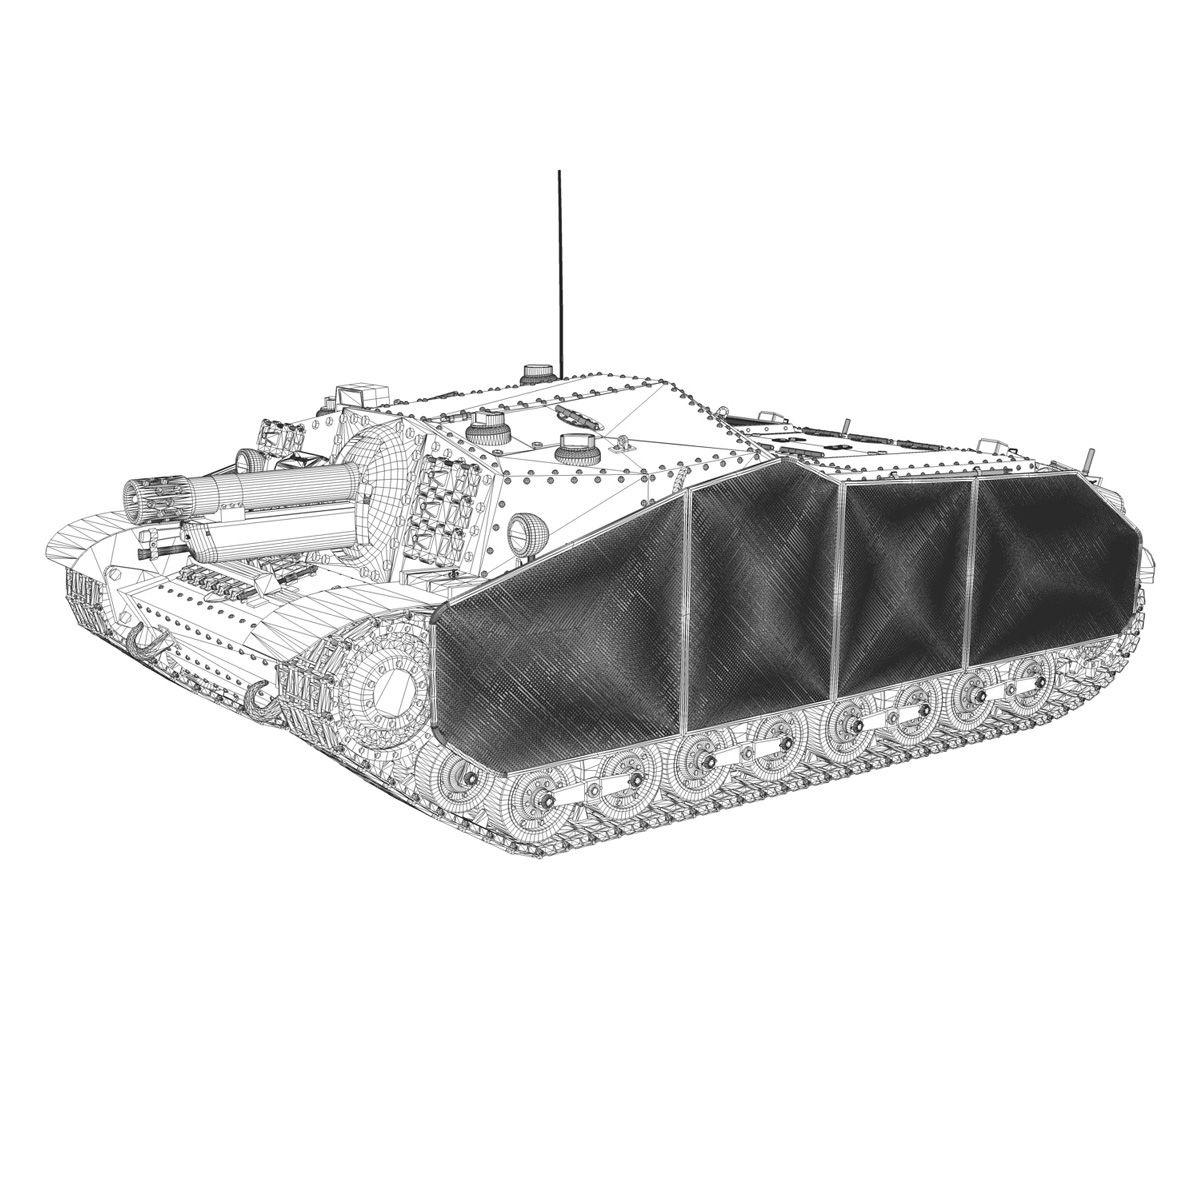 43m zrinyi ii – hungarian assault gun 3d model 3ds fbx c4d lwo obj 251639